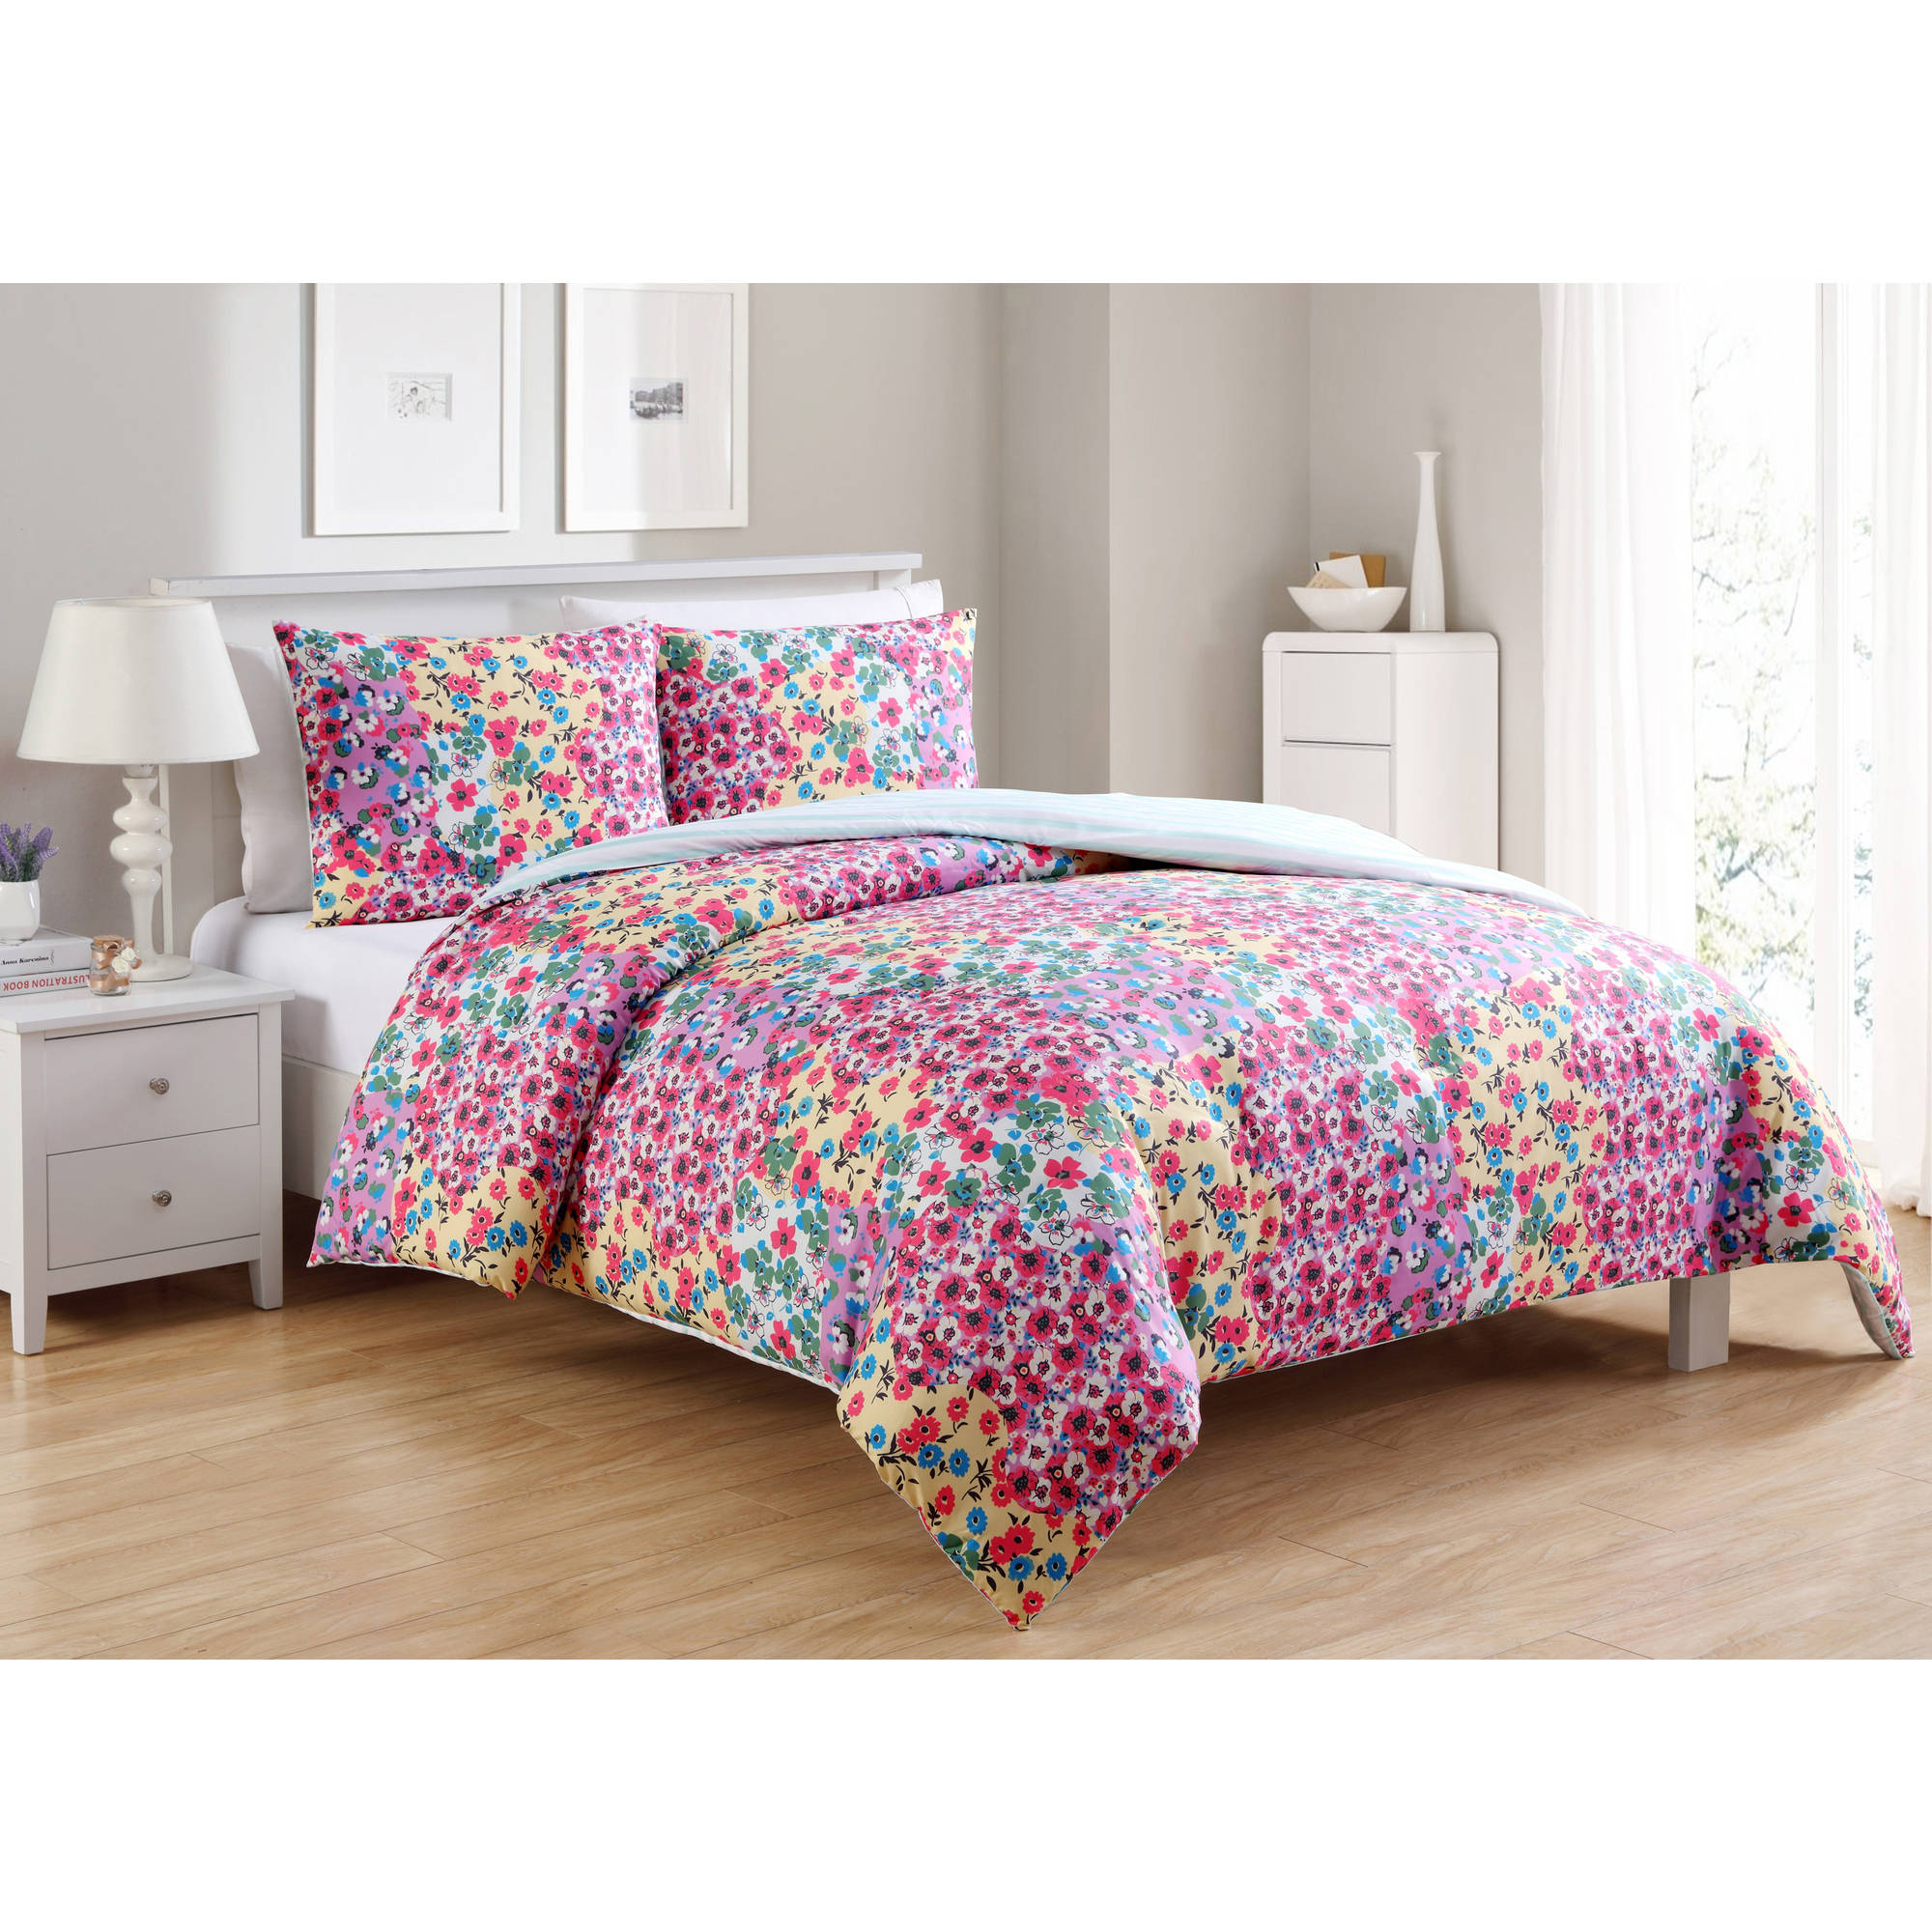 VCNY Home River Rose Floral Printed 2/3 Piece Reversible Bedding Comforter Set, Shams Included